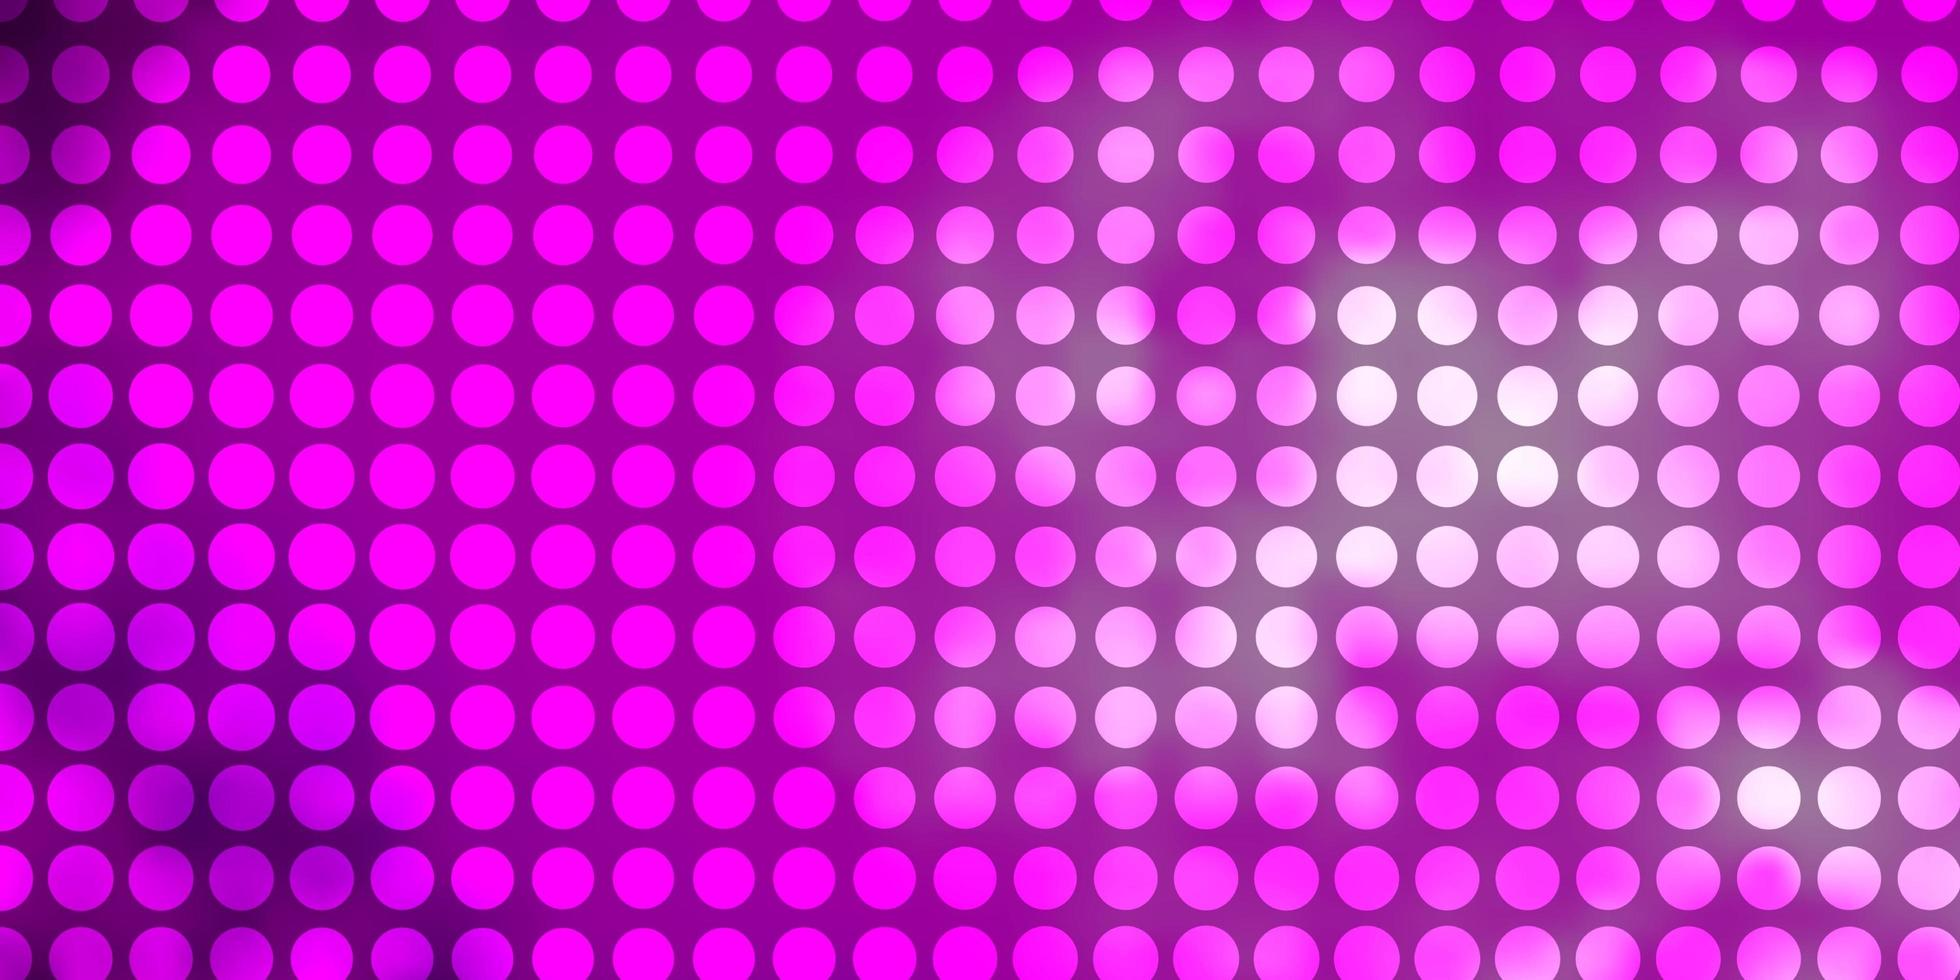 Light Pink vector layout with circles.